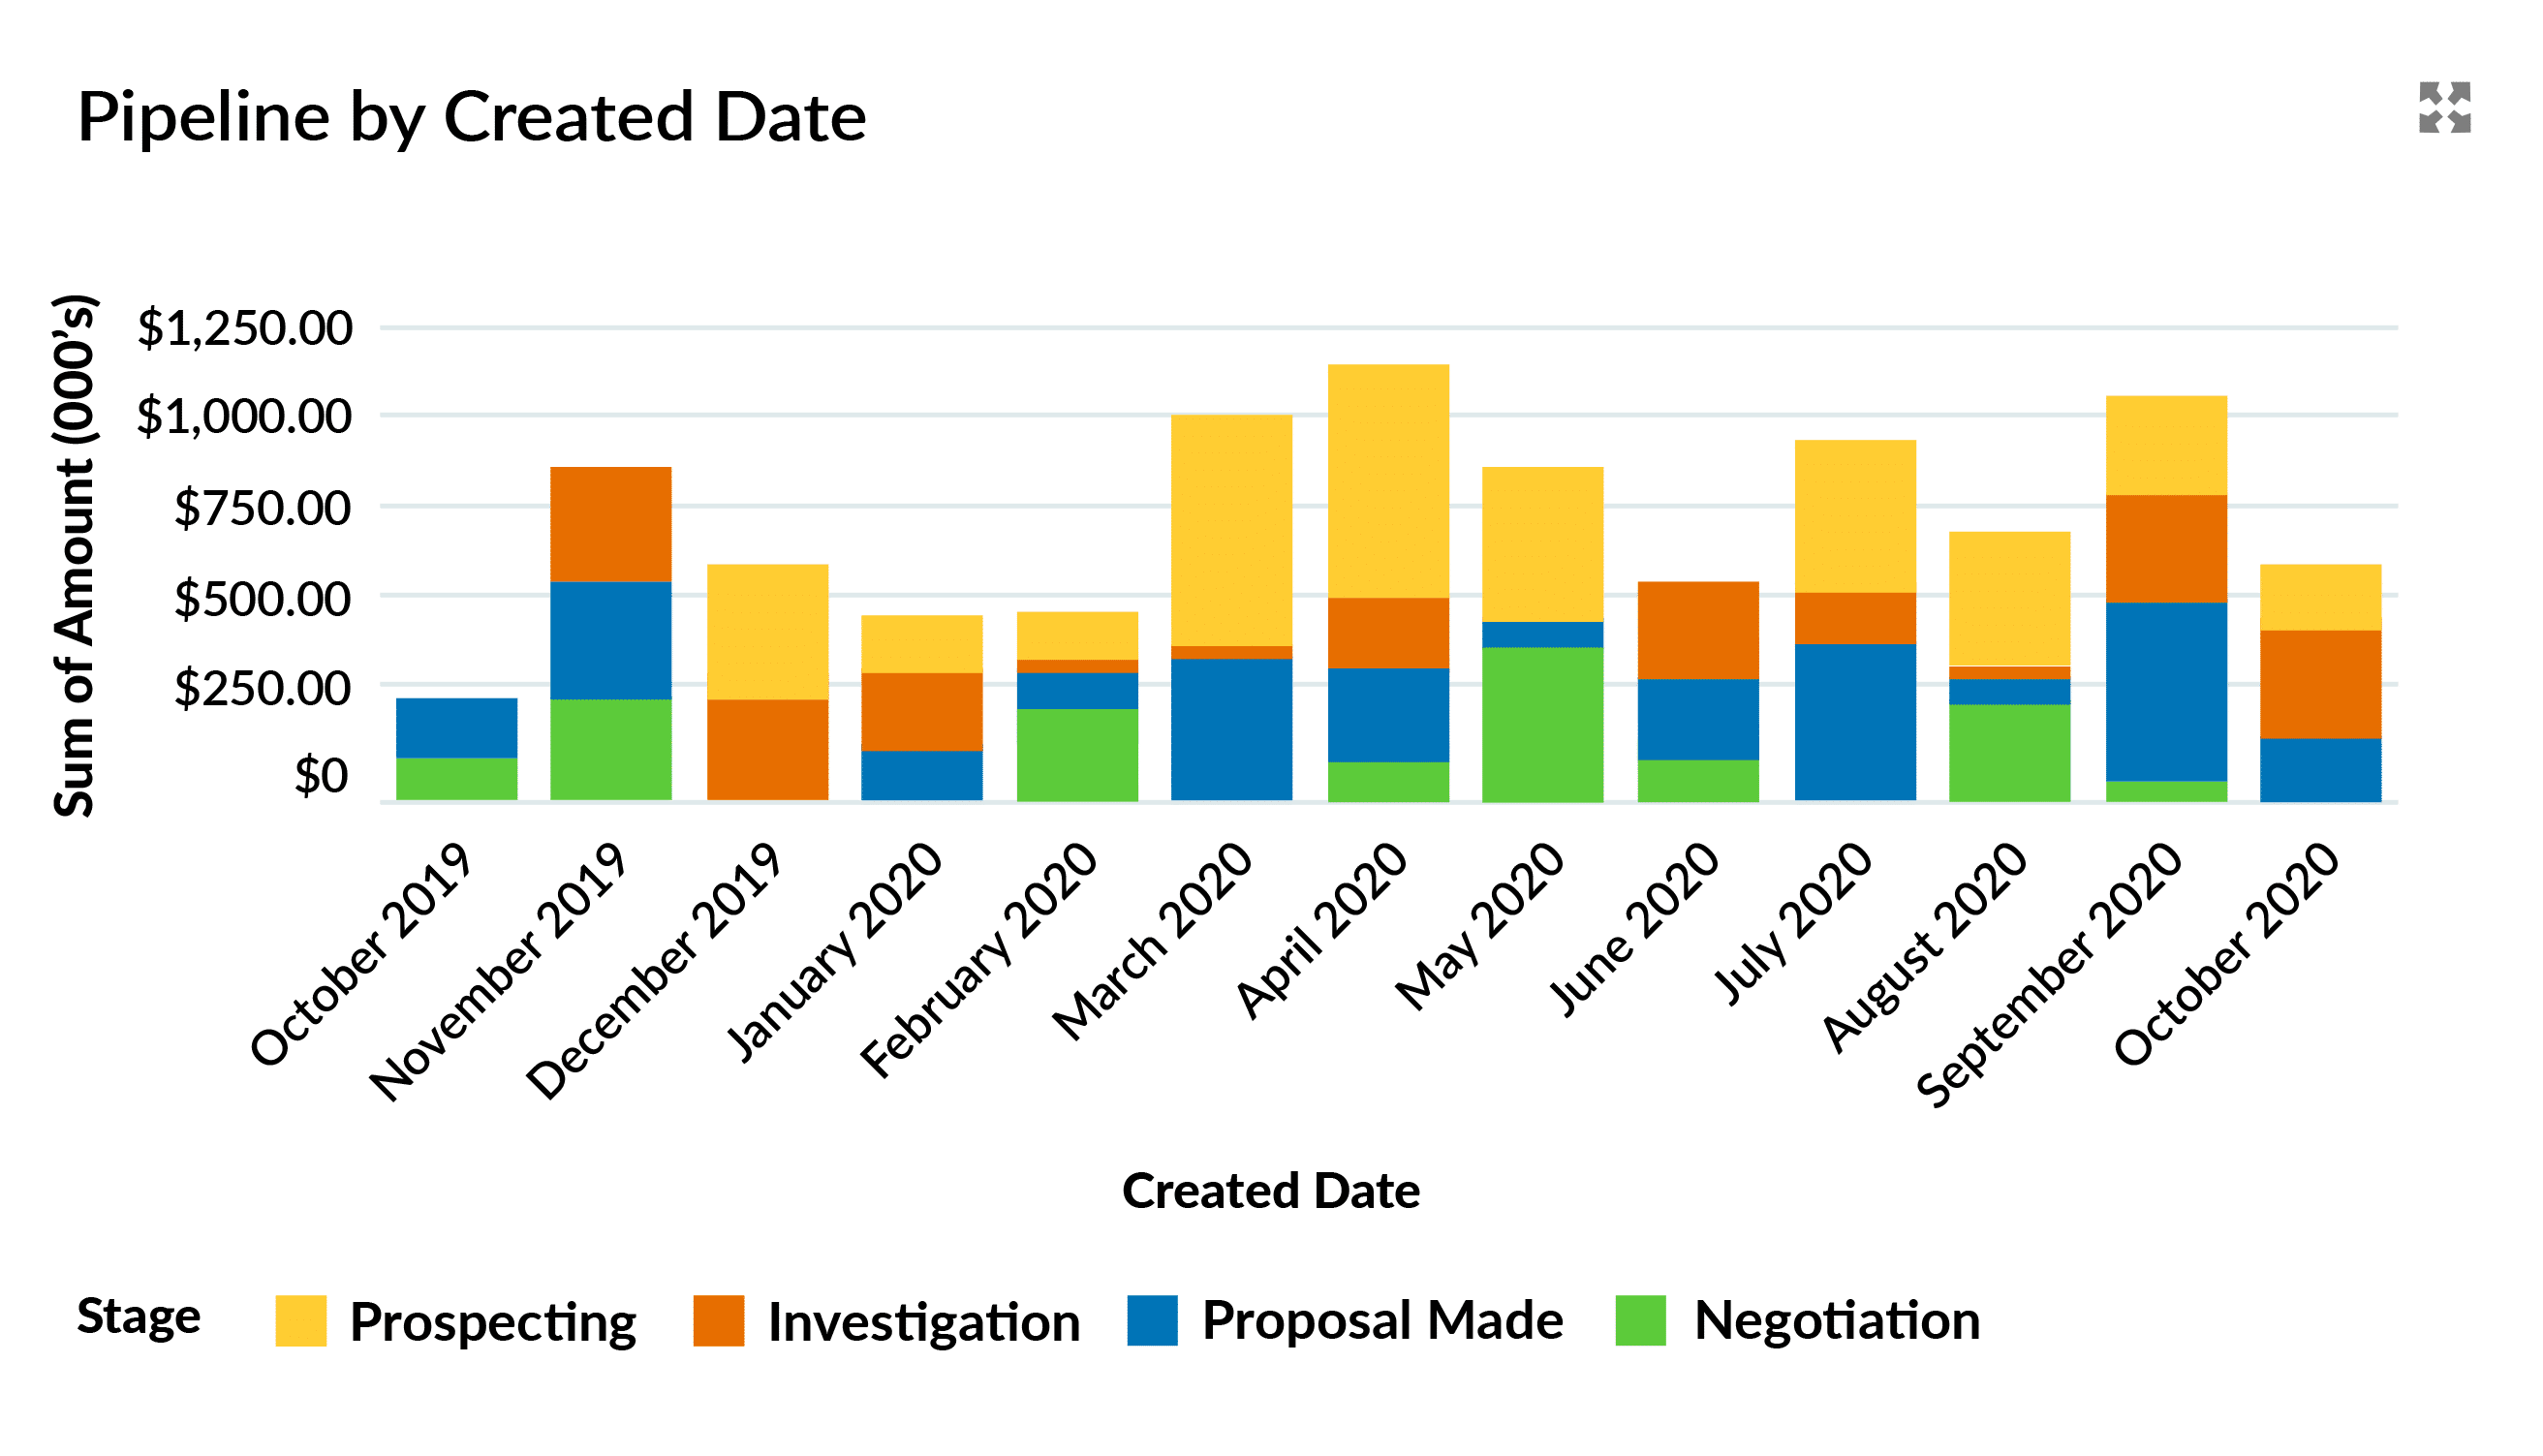 A Pipeline view by split by Created Date and Stage